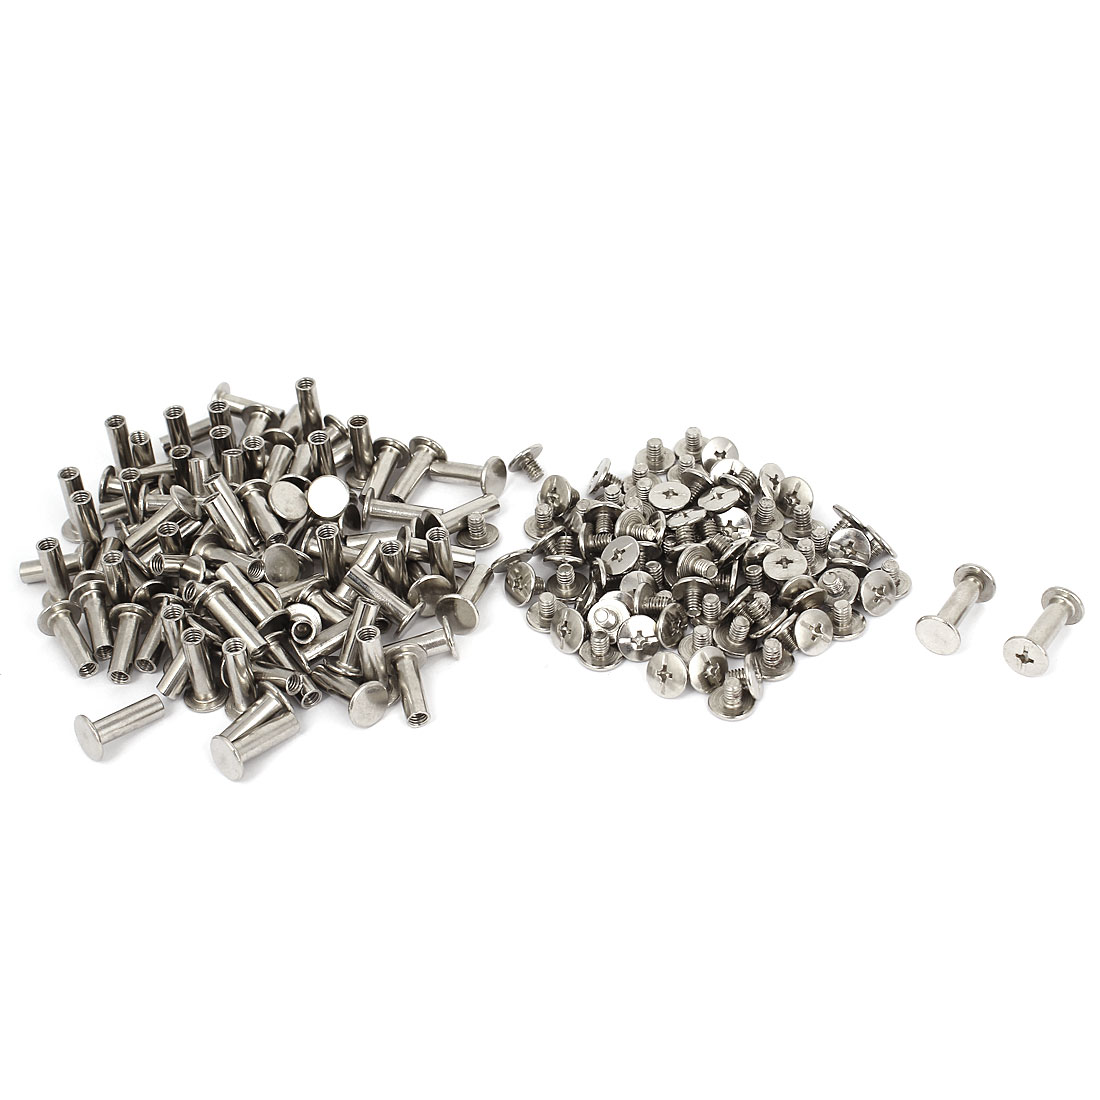 5mmx15mm Nickel Plated Binding Screw Post 100pcs for Scrapbook Photo Albums